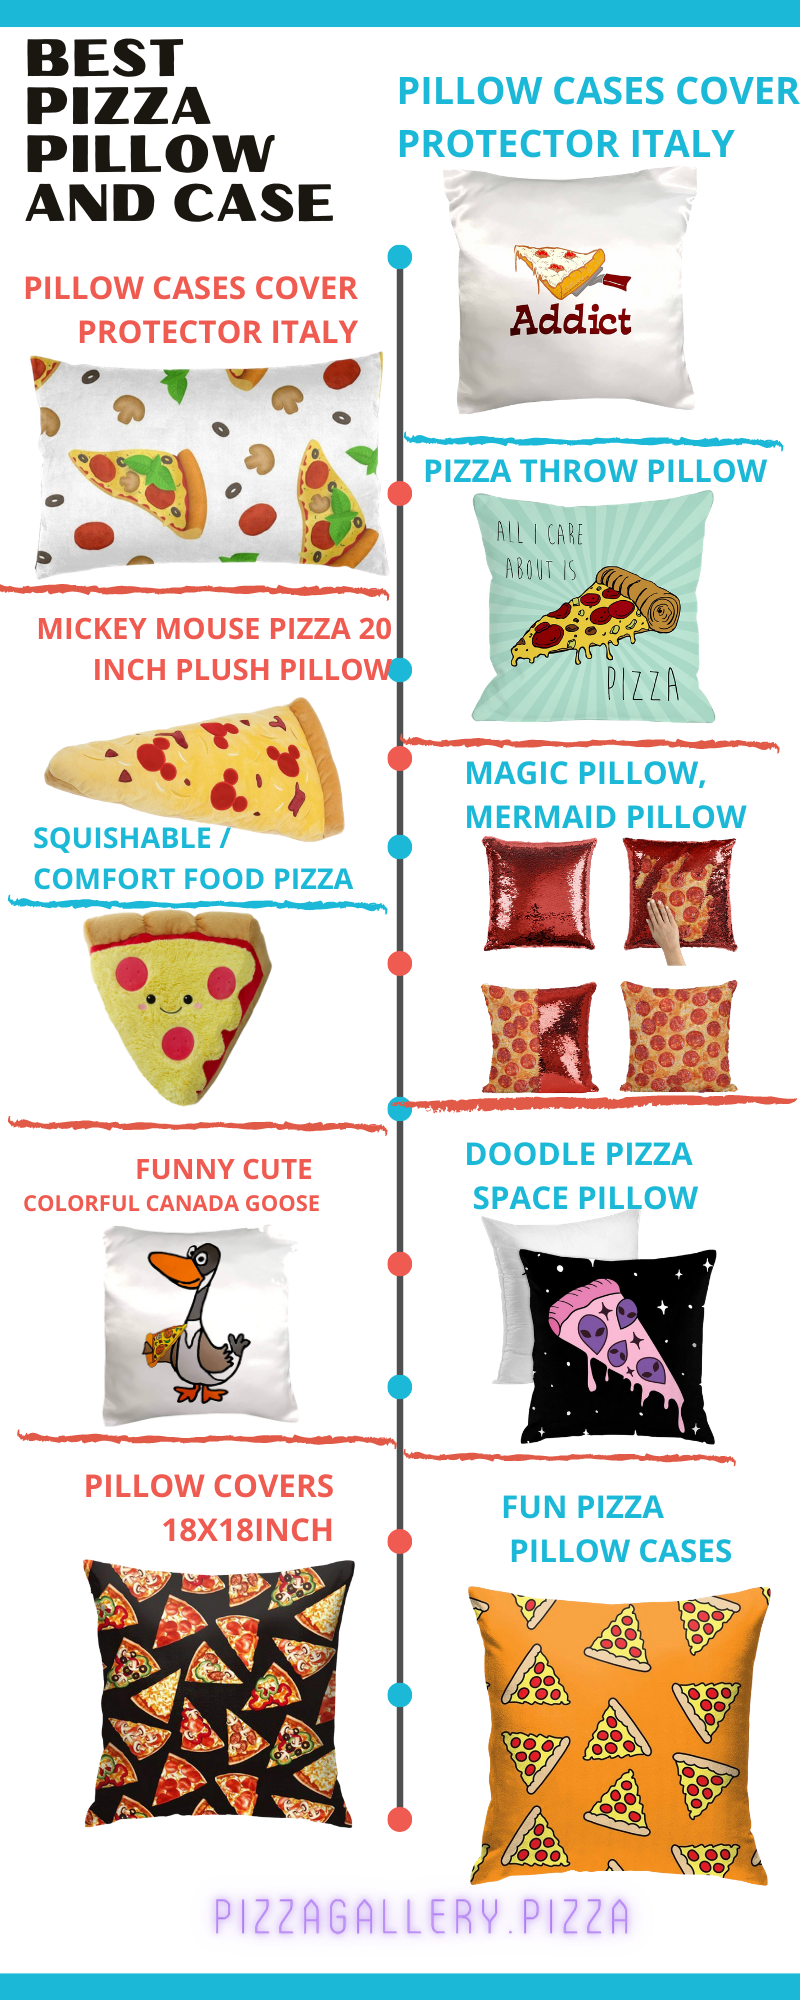 Best Pizza Pillow And Case